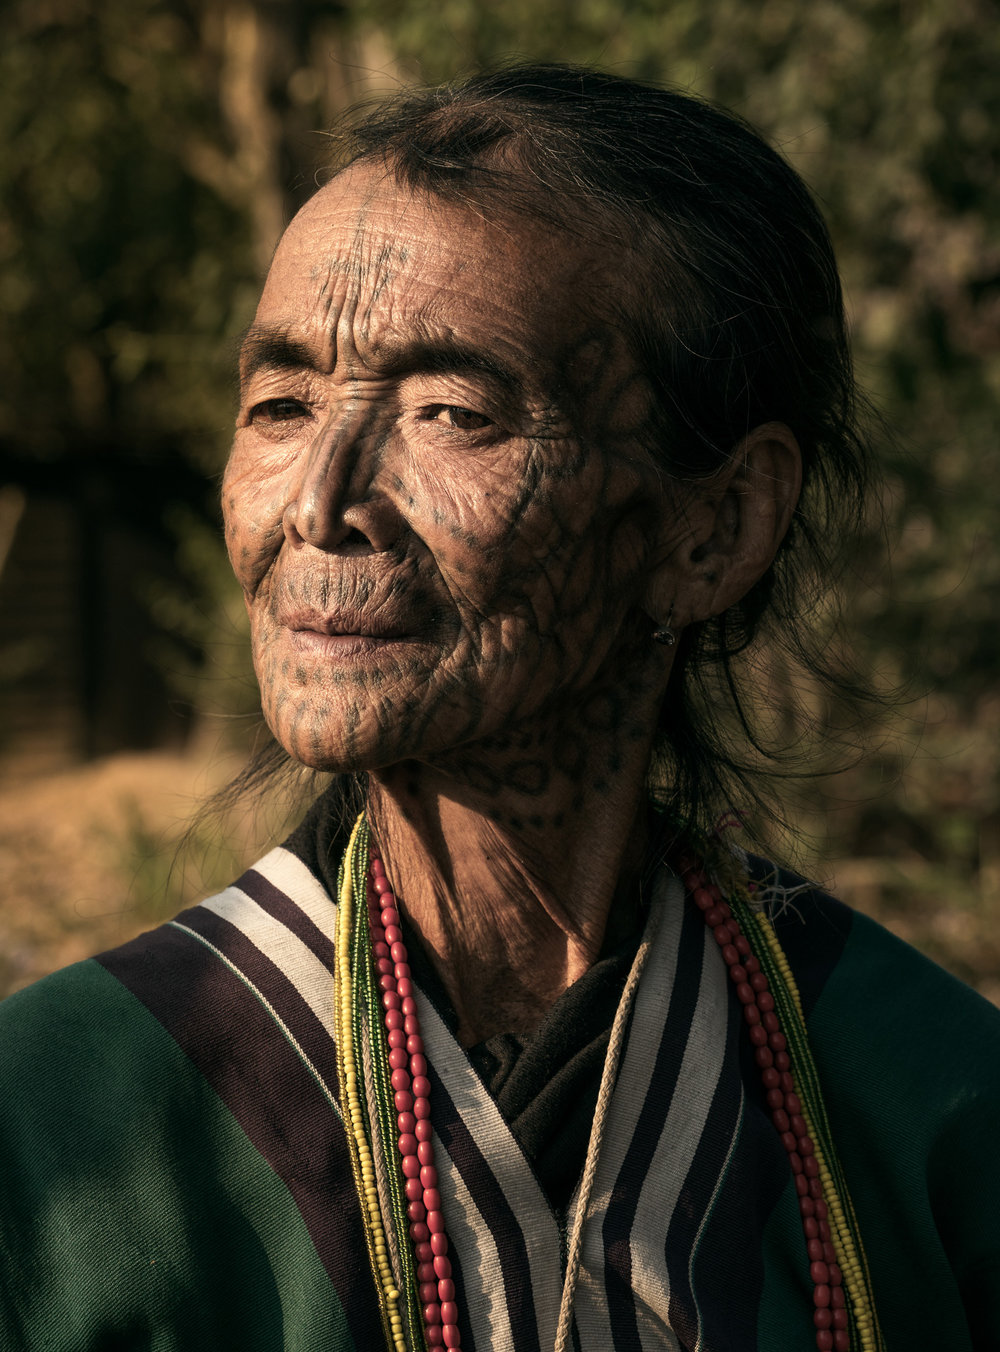 Myanmar: The Chin State